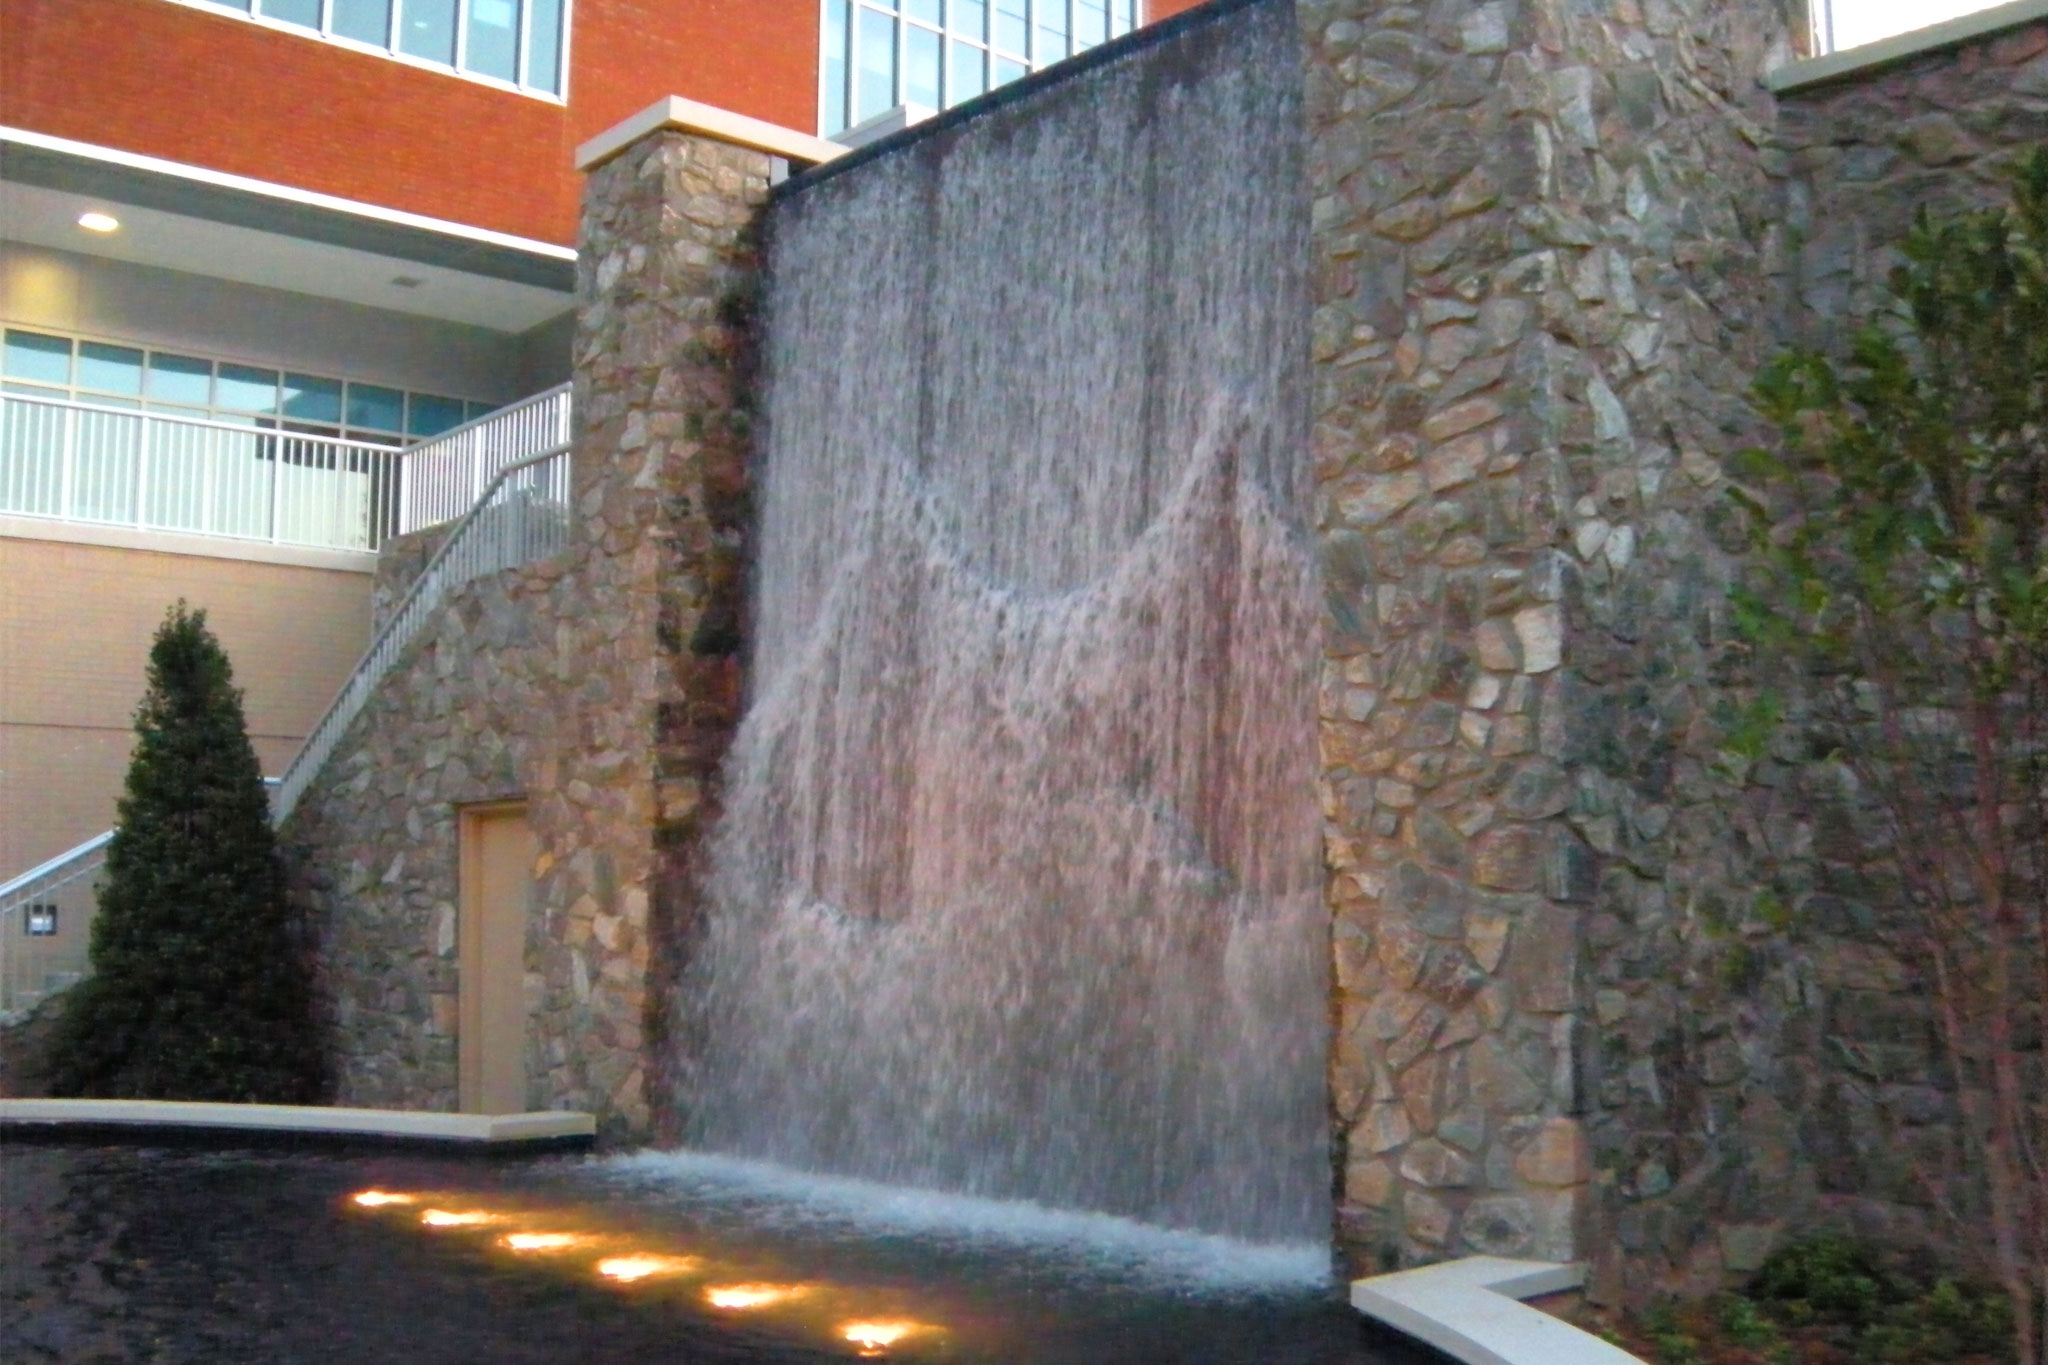 Mission Hospital Courtyard Water Wall Landscape Architecture